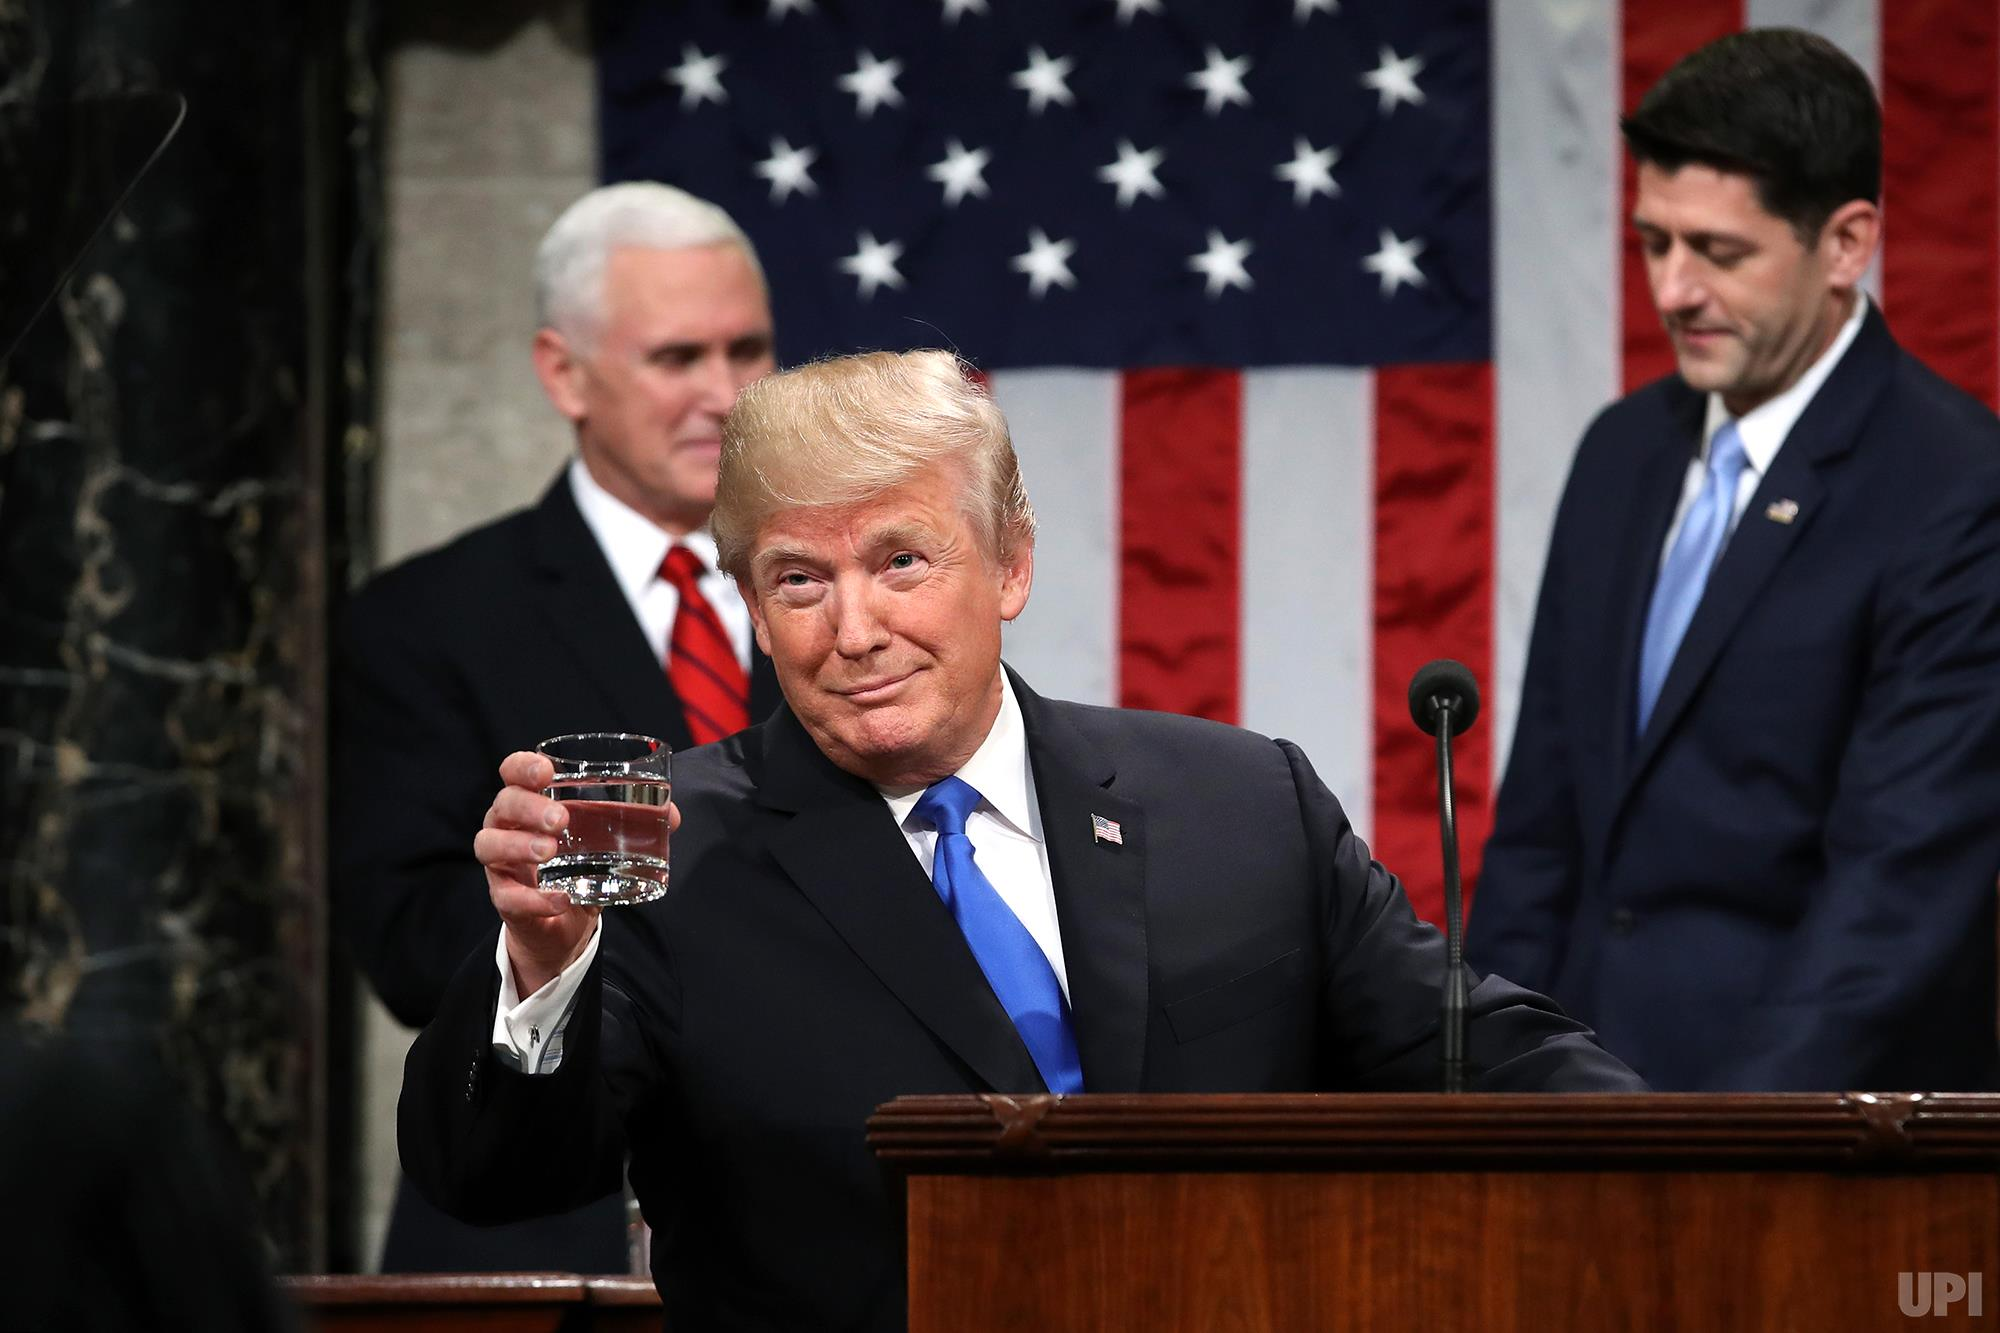 POTUS suggests 'new wave of optimism' in SOTU address